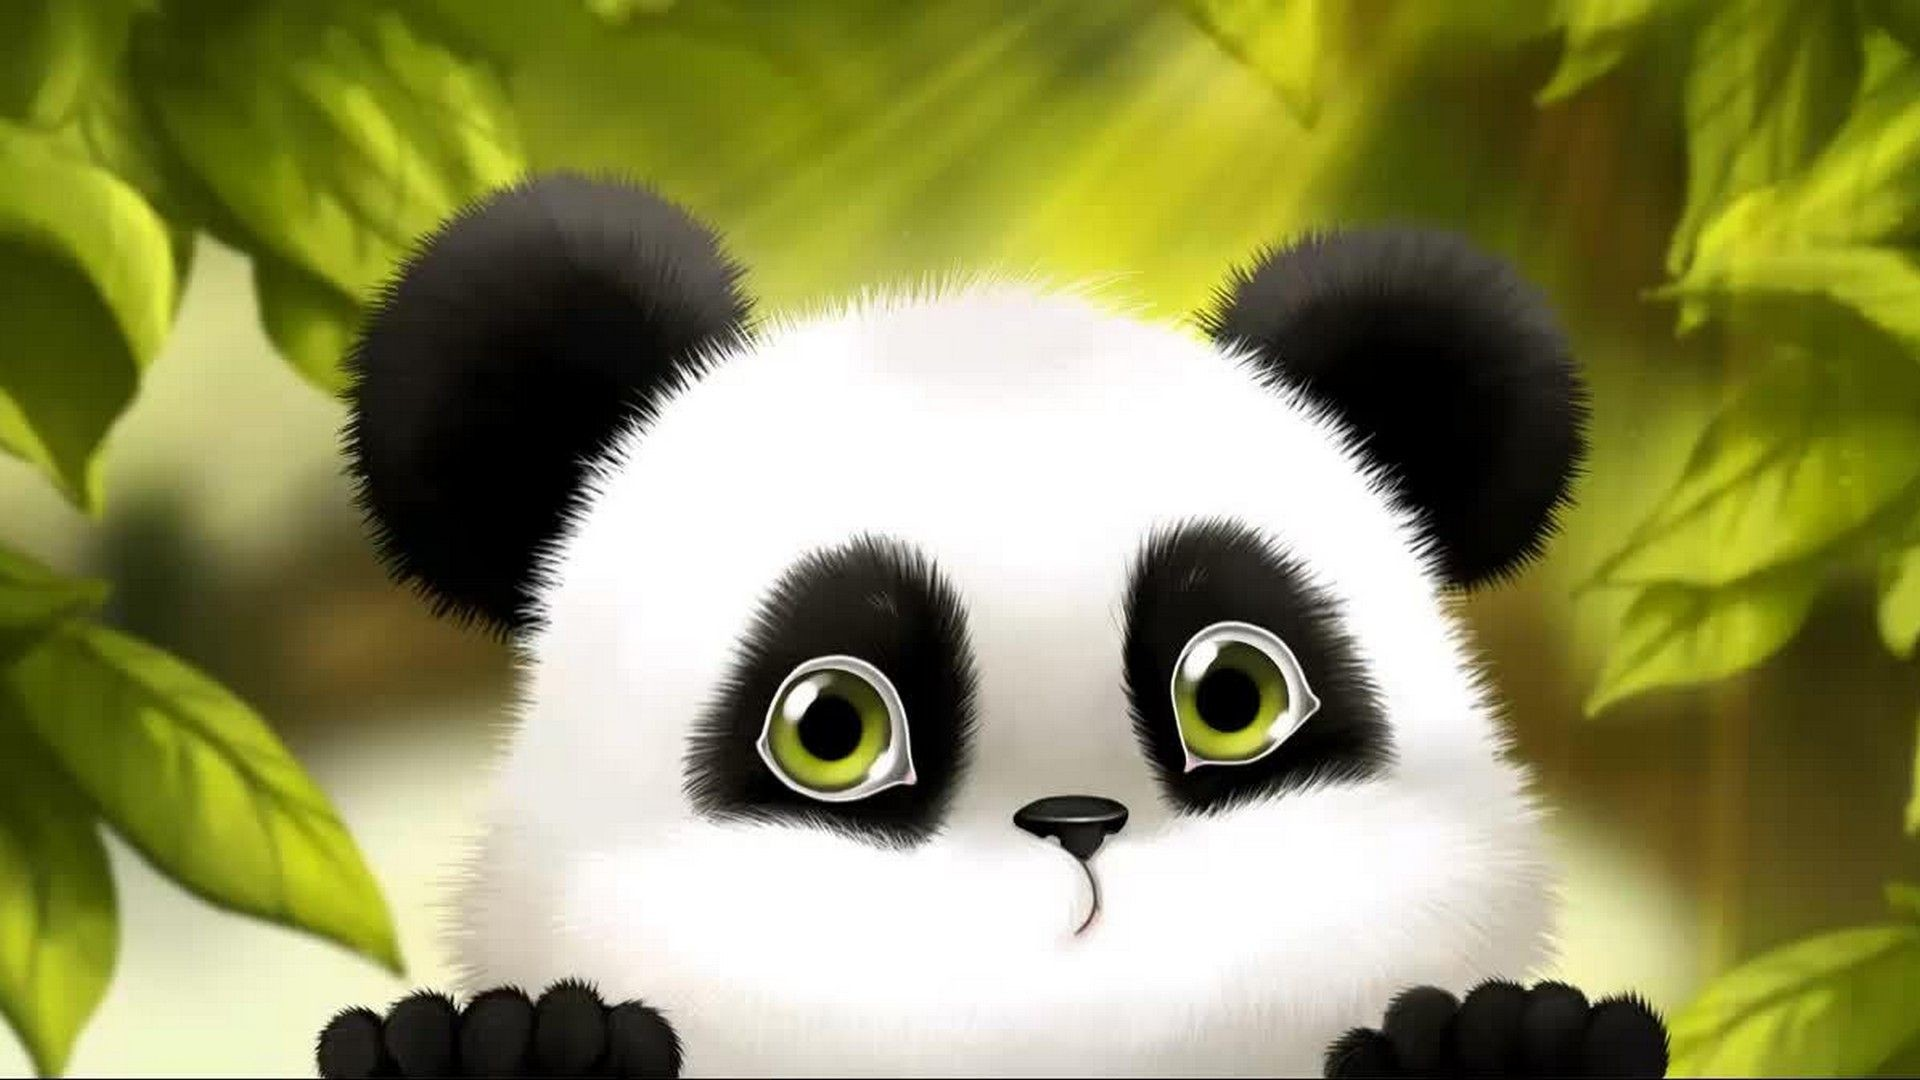 Cute Couple Wallpapers For Mobile Phones Baby Panda Wallpapers 75 Background Pictures